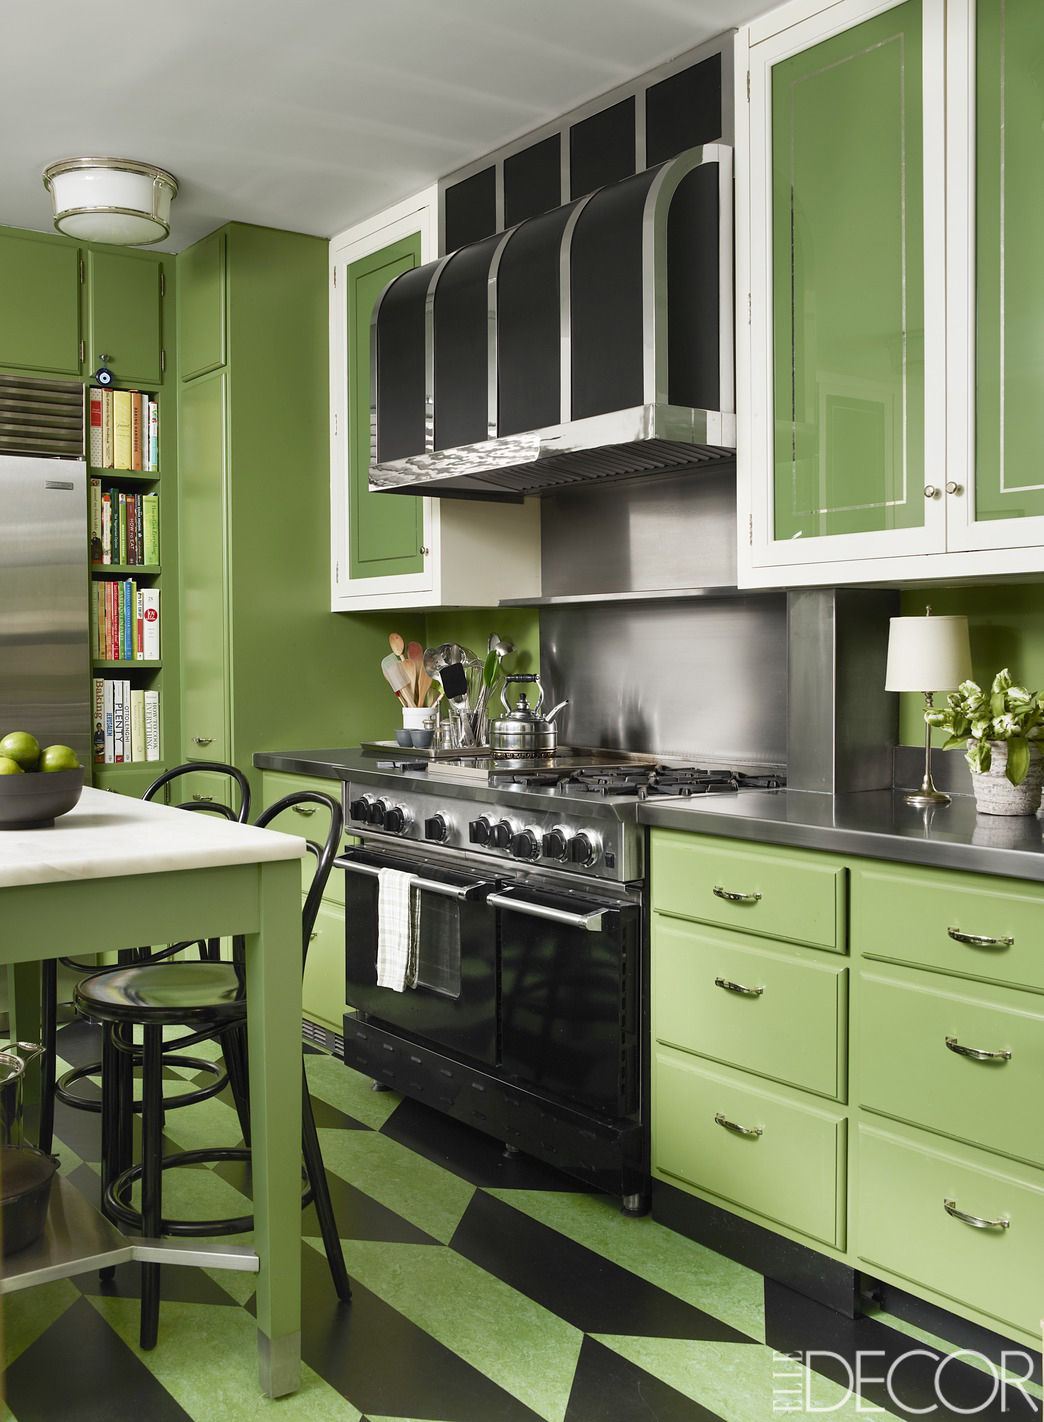 Prime 40 Small Kitchen Design Ideas Decorating Tiny Kitchens Largest Home Design Picture Inspirations Pitcheantrous